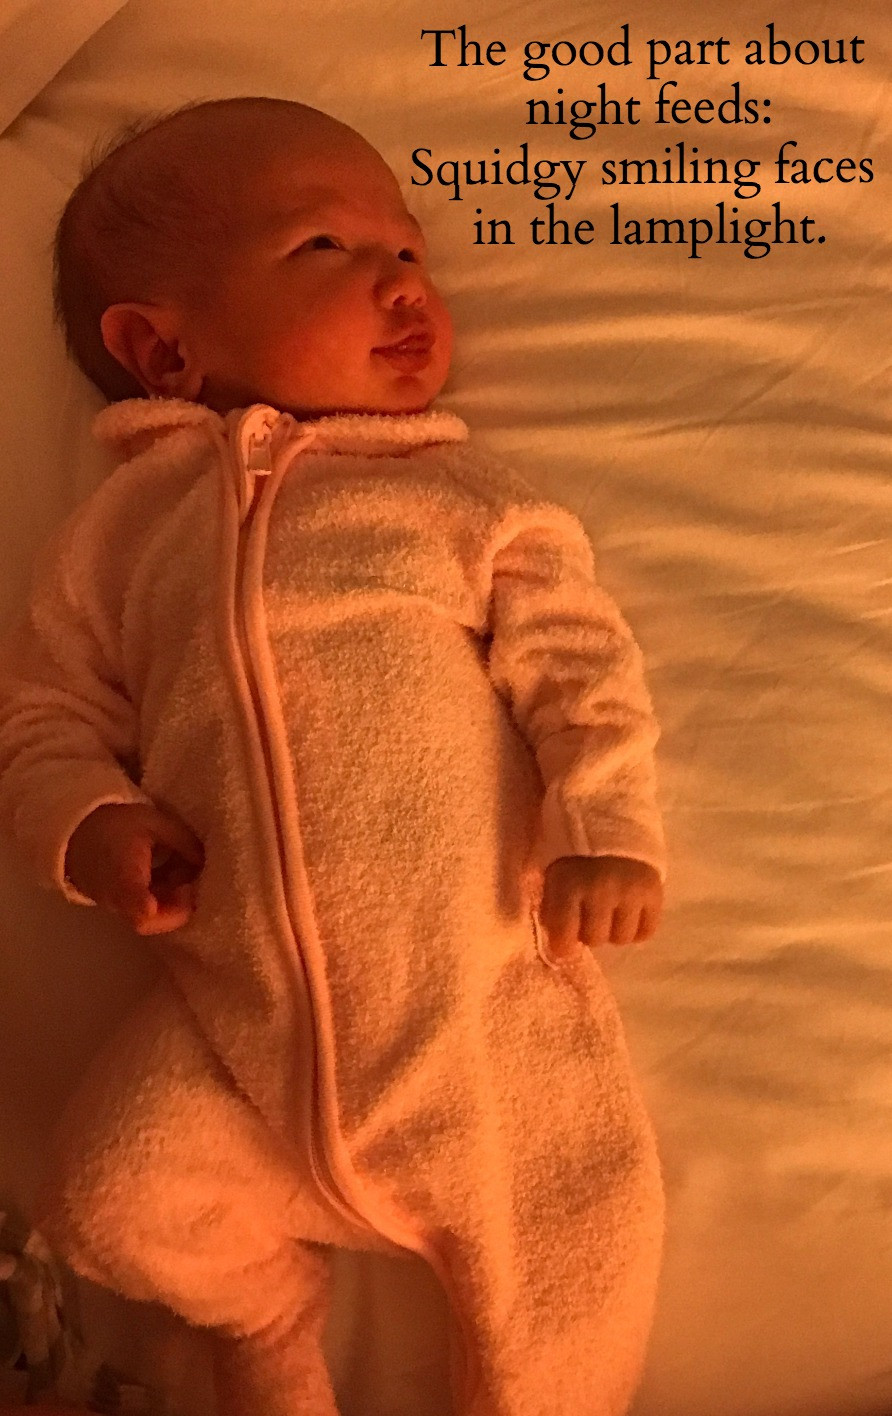 The good part about night feeds - squidgy faces smiling in the lamp light.